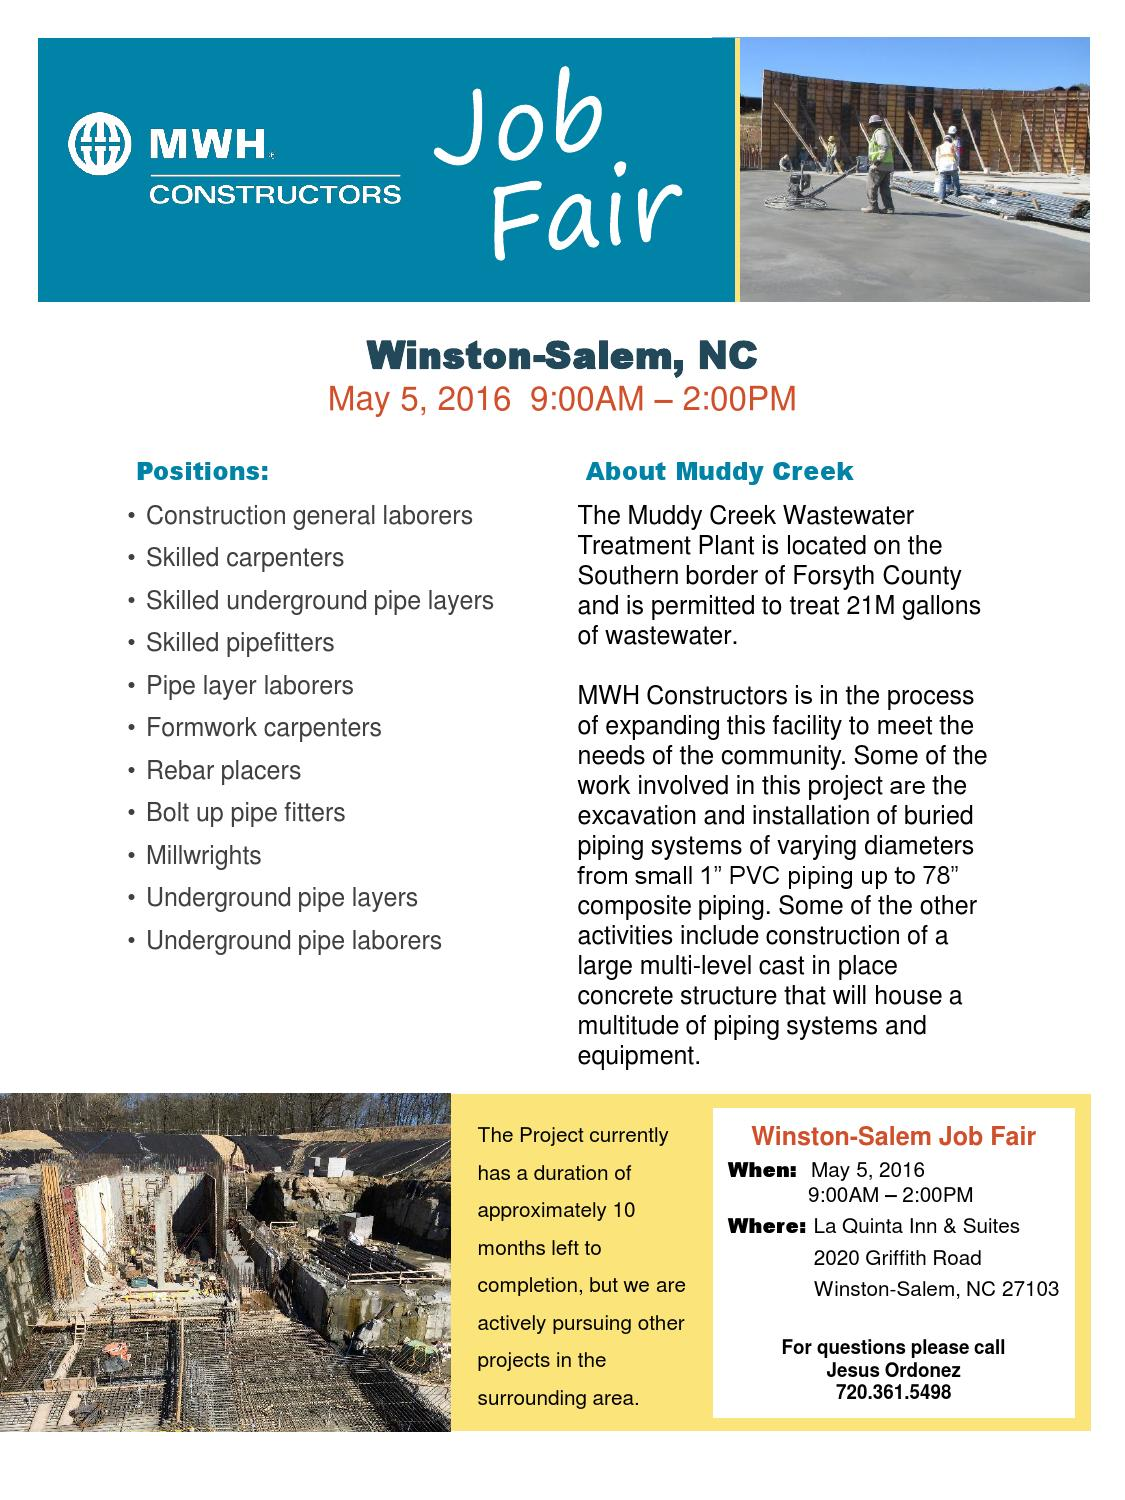 Job Fair for Construction Workers